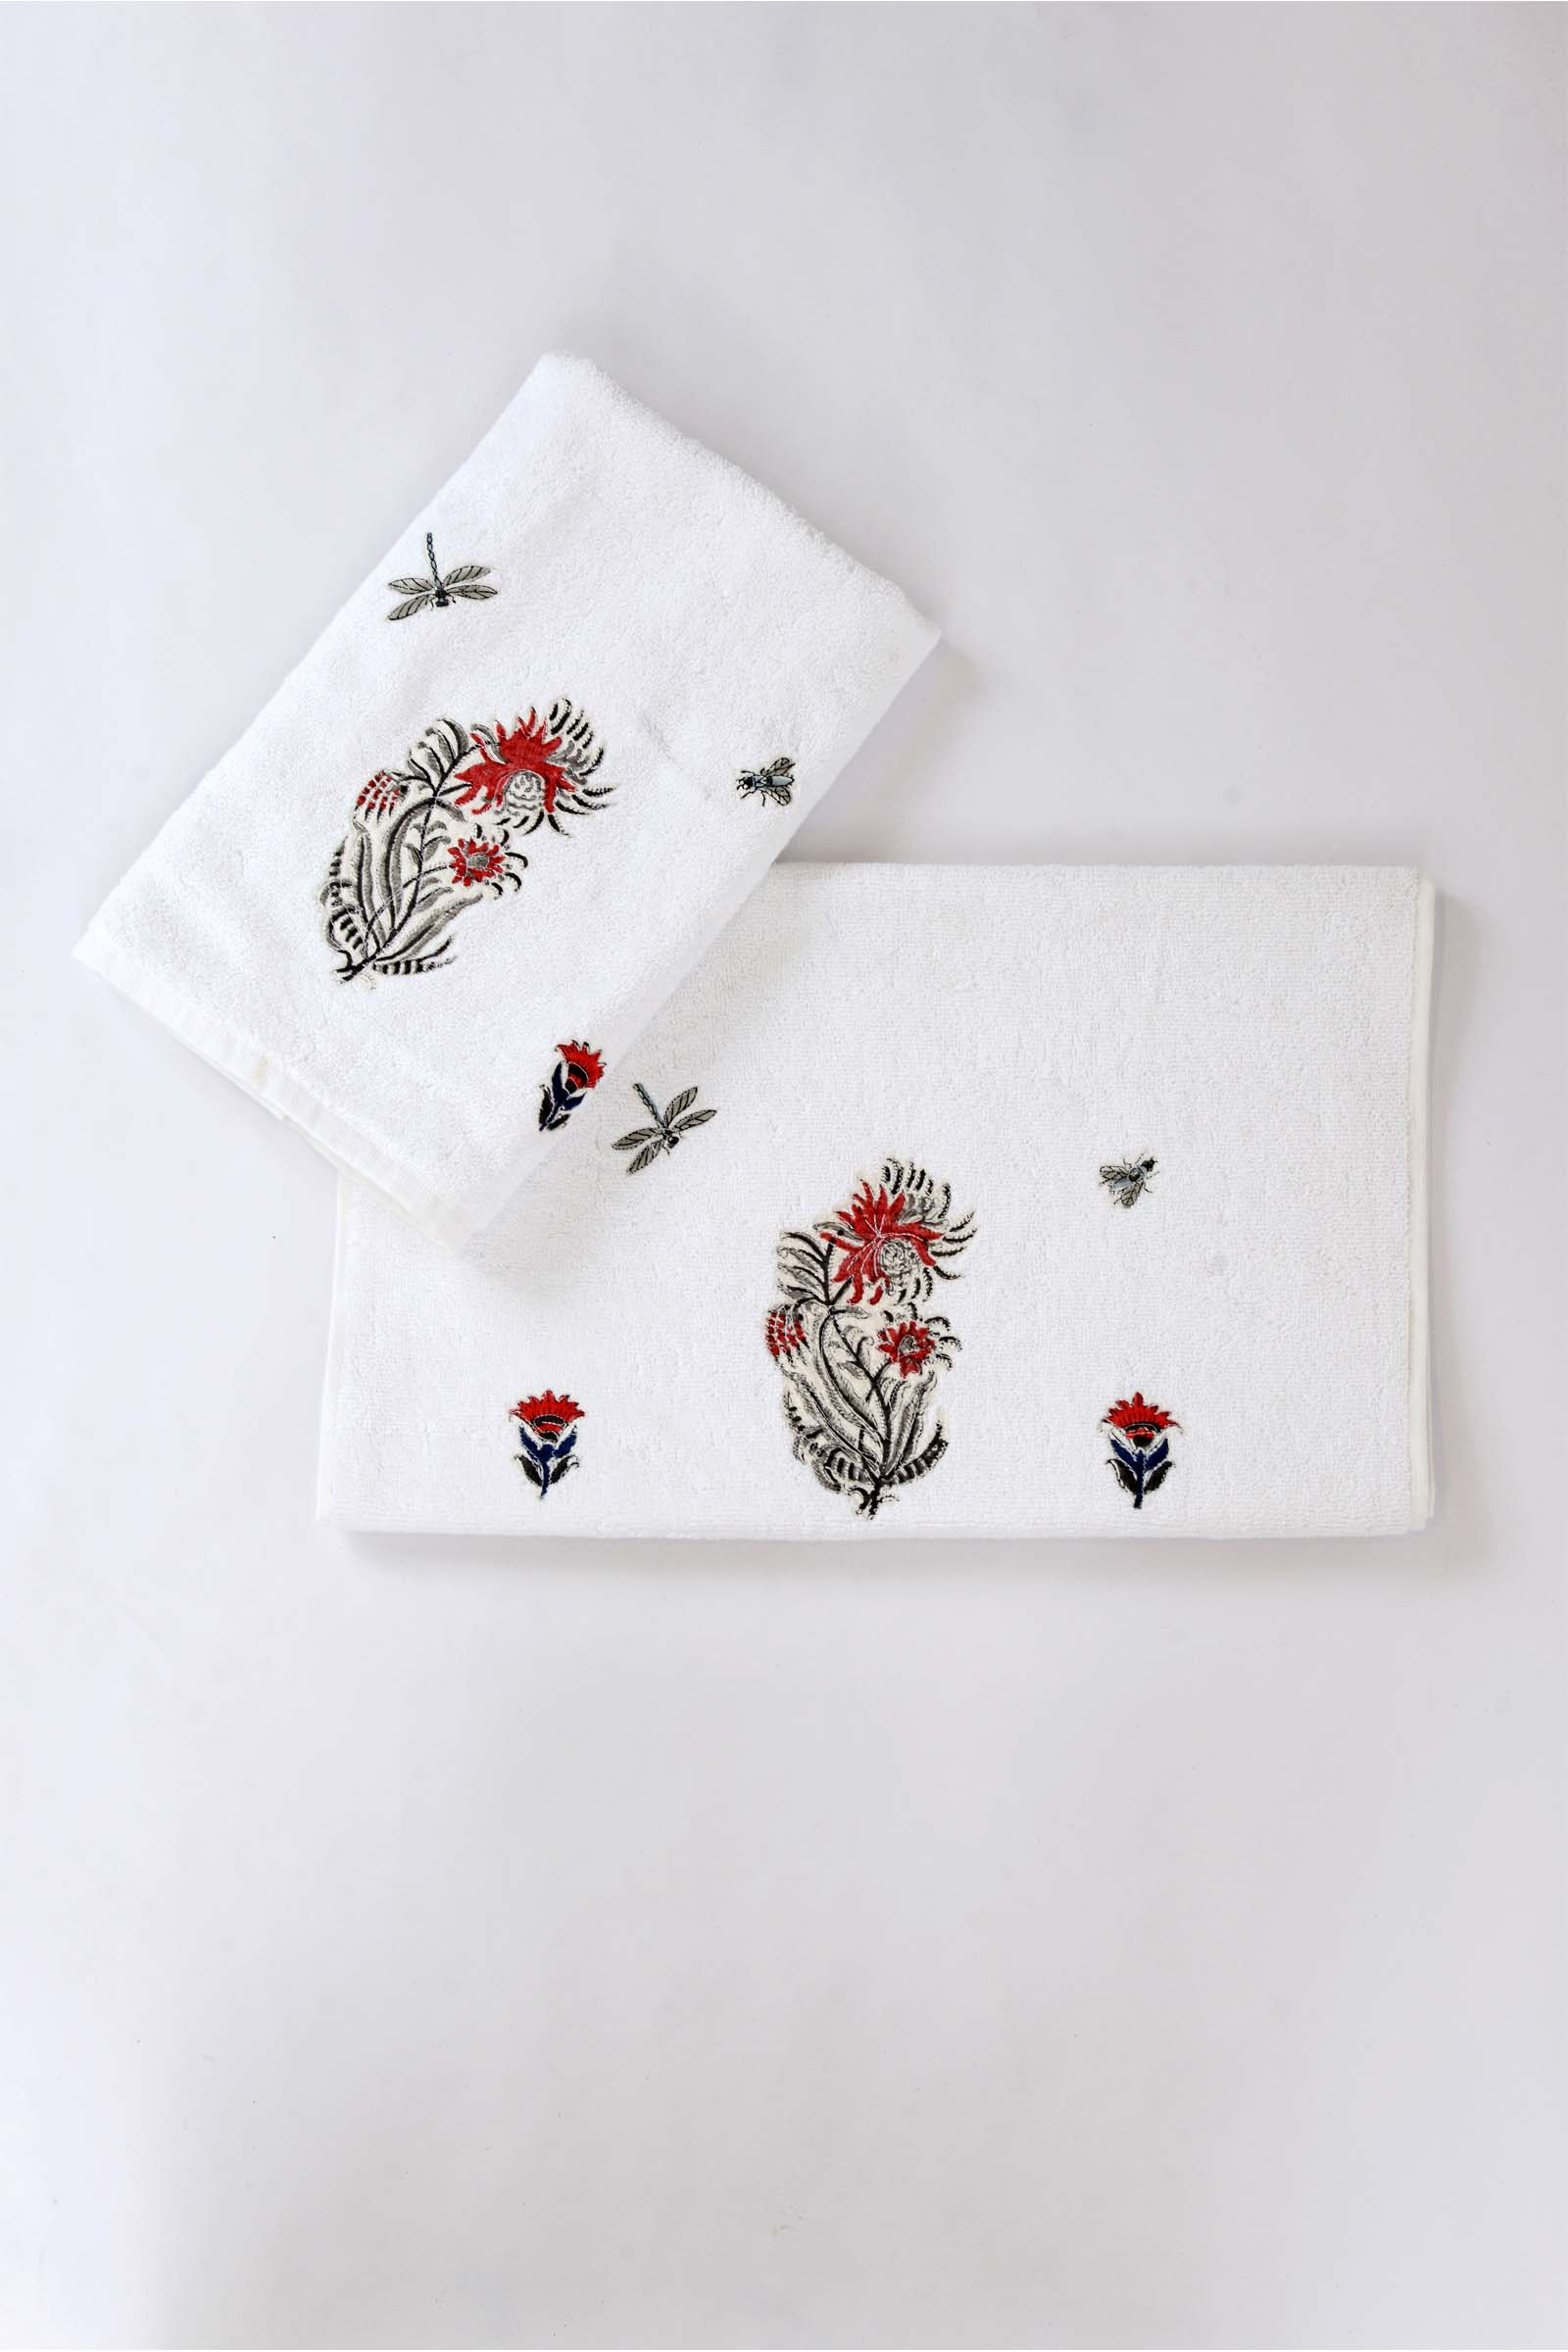 Egypt rose hand towel (set of 2)